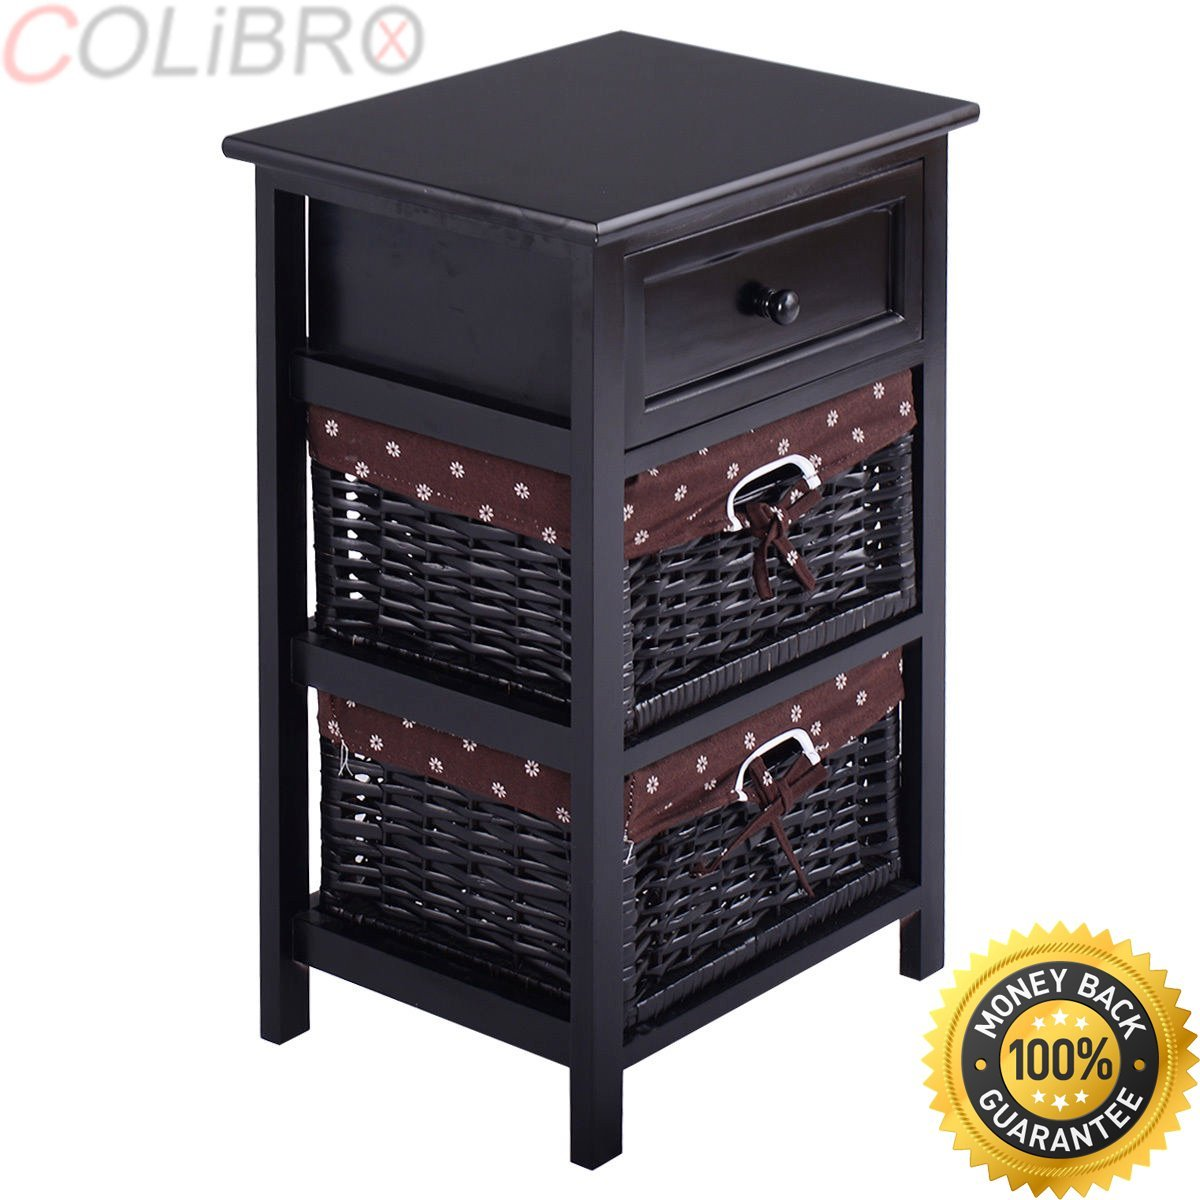 COLIBROX--Set OF 2 Night Stand 3 Tier 1 Drawer Bedside End Table Organizer Wood W/2 Basket. amazon night stand 3 layer 1 drawer bedside end table. 1 drawer bedside end table organizer bedroom wood.